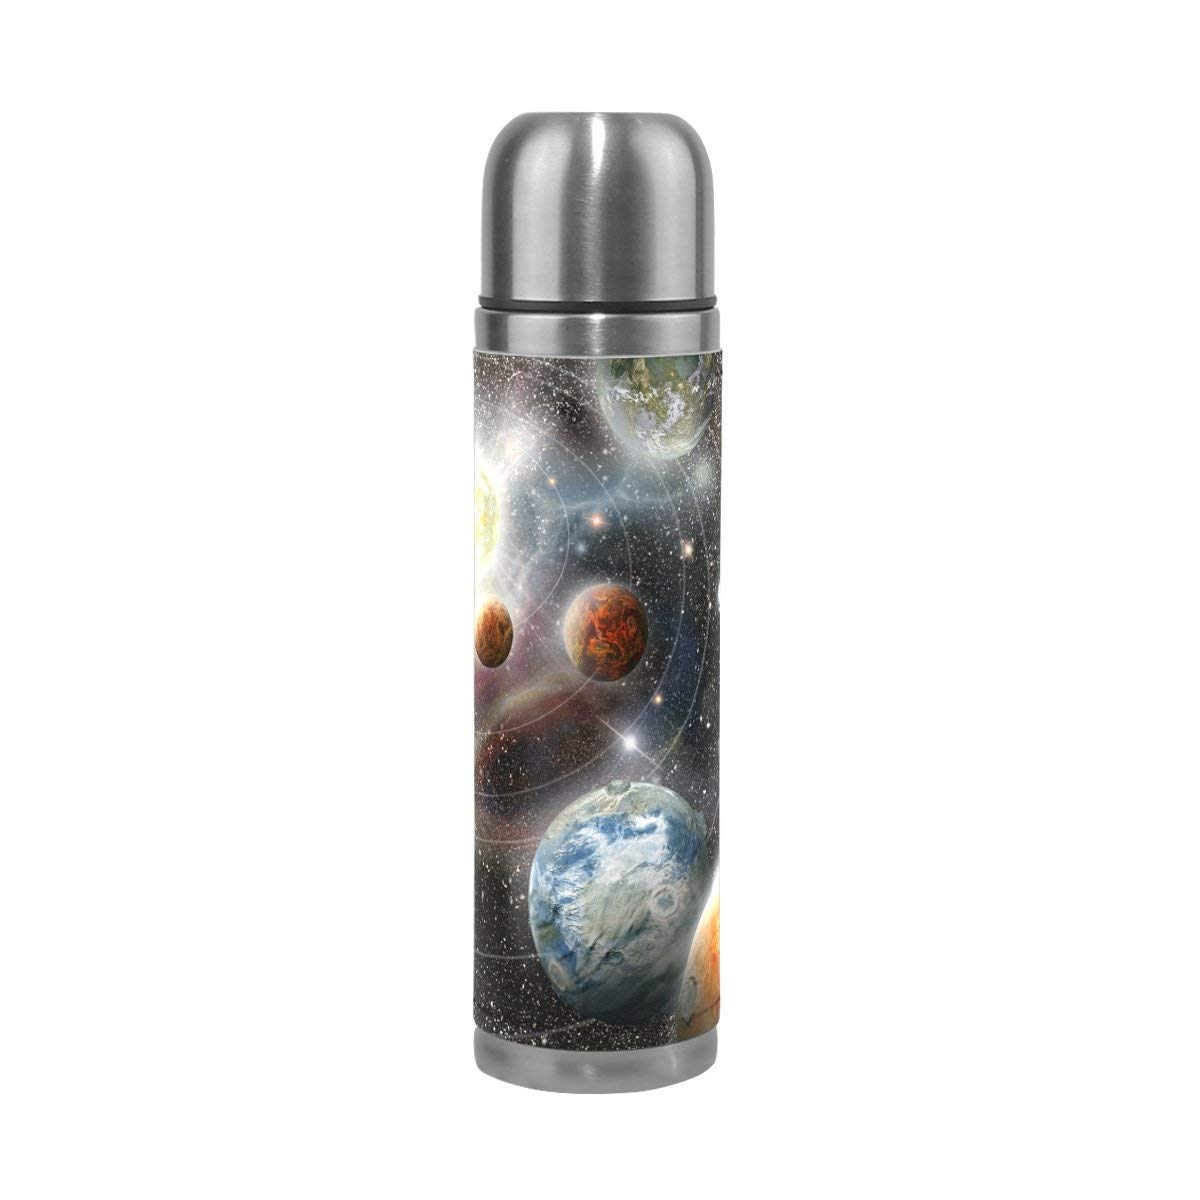 EAKLLCI Stainless Steel Water Bottle Double Wall Vacuum Cup Insulated PU Leather Travel Mug 17 oz Planet Star Solar System in Space Christmas Birthday Gifts for Mom Dad Boys Girls Kids Lover Friends